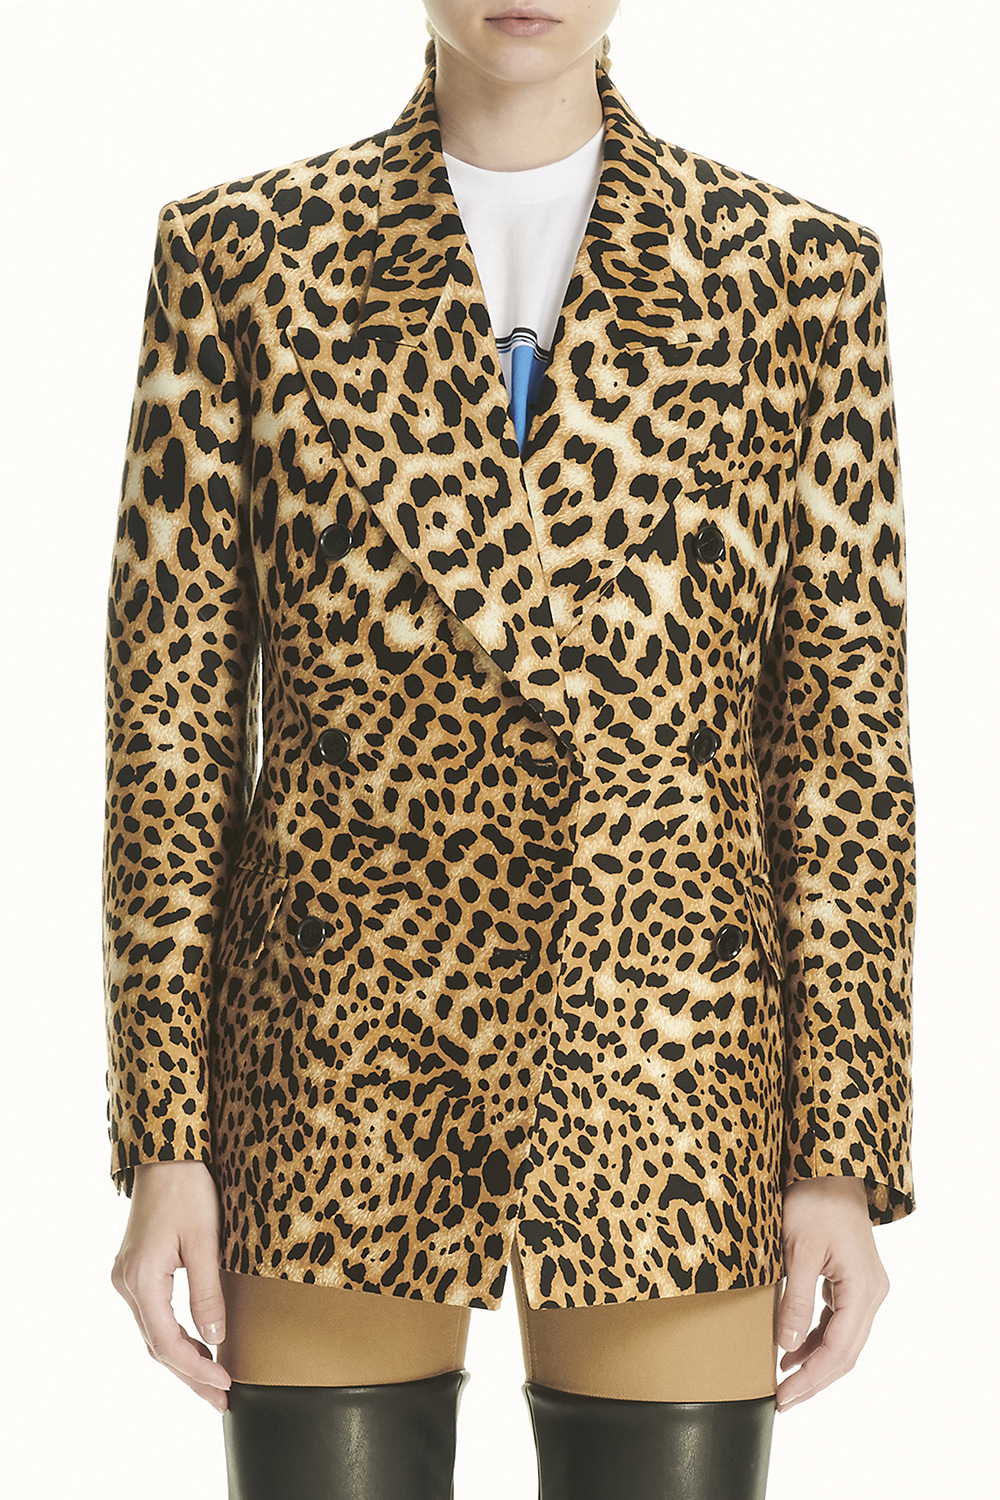 PS21 STRUCTURED DOUBLE LEOPARD JACKET